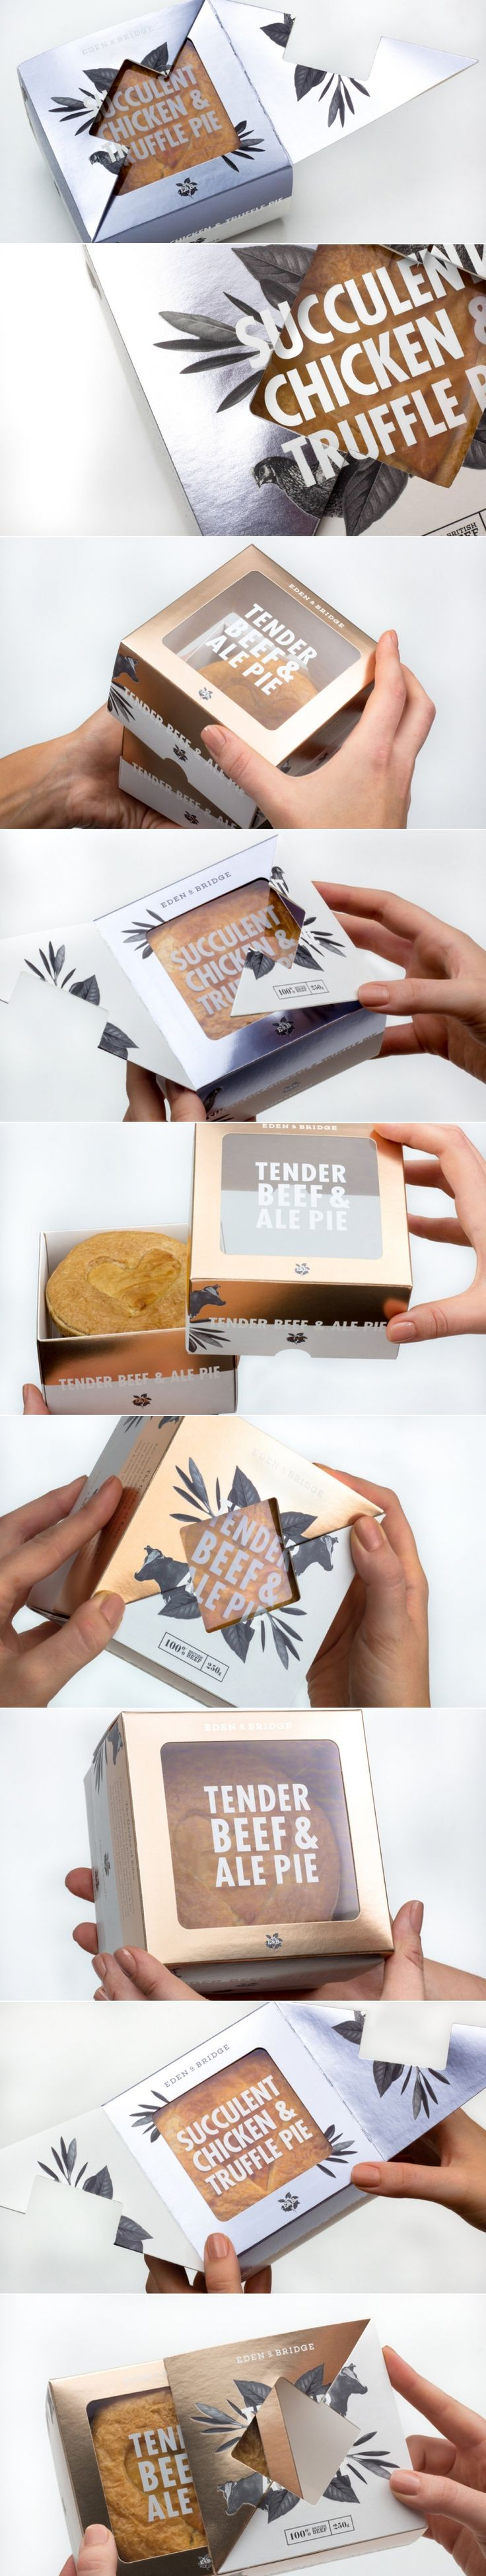 Eden & Bridge Luxury Pie — The Dieline - Branding & Packaging Design